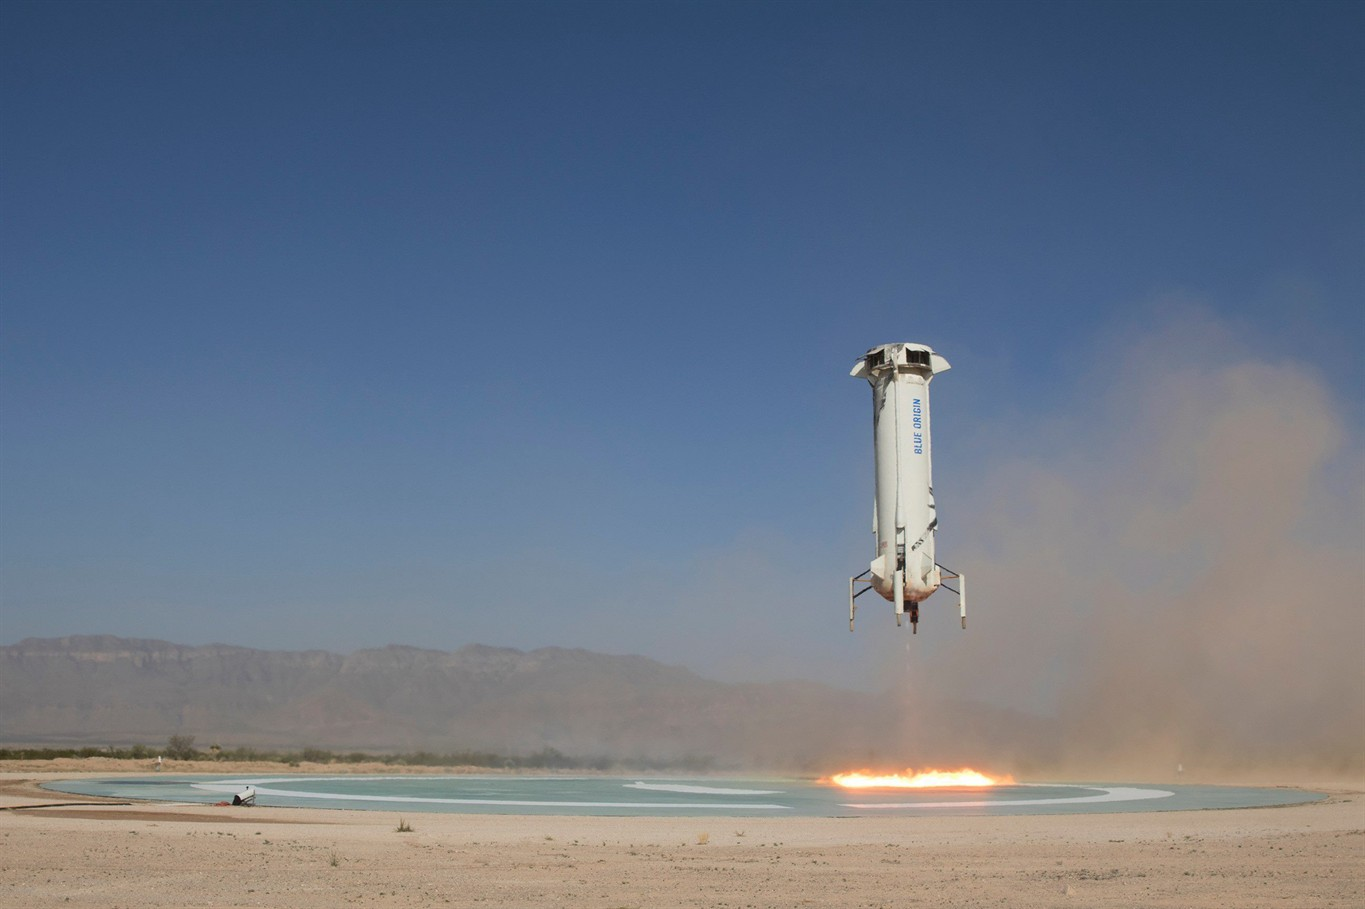 Blue Origin subjects its rocket to high-altitude escape test